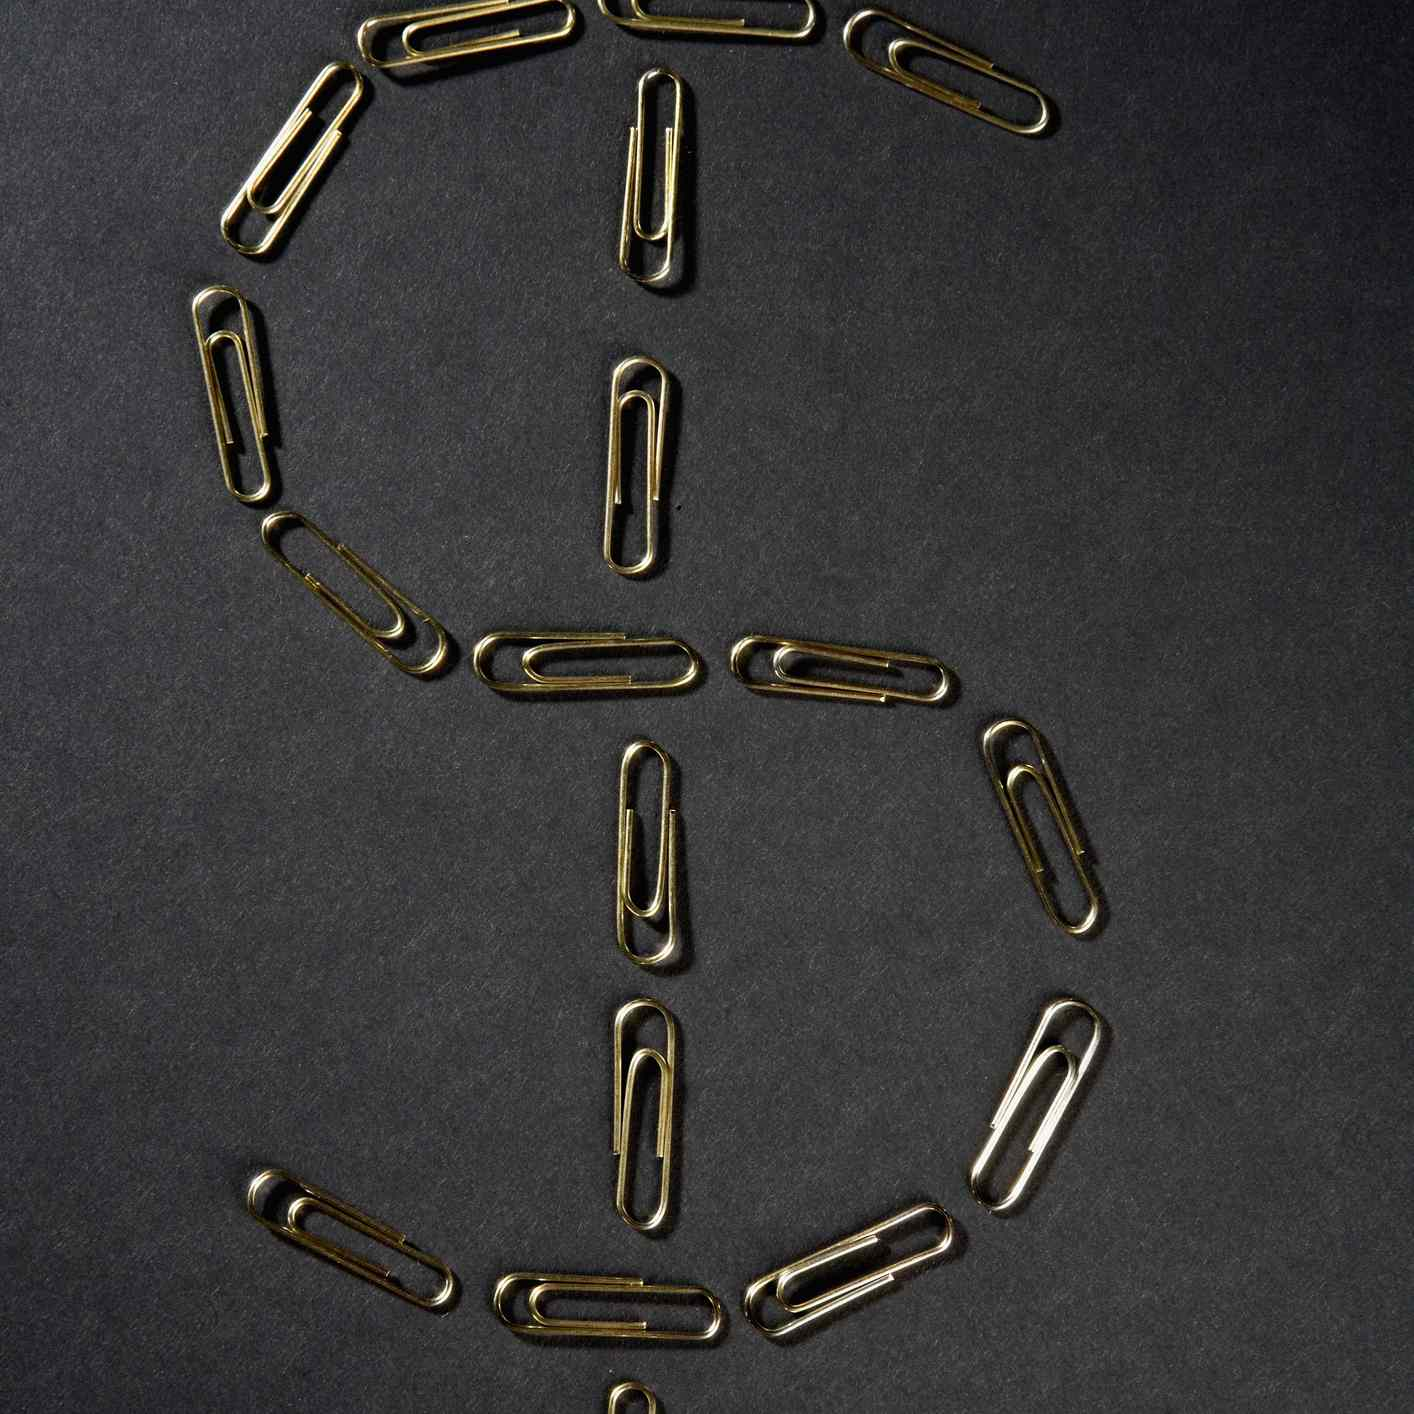 Close-up of paper clips in the shape of Dollar symbol